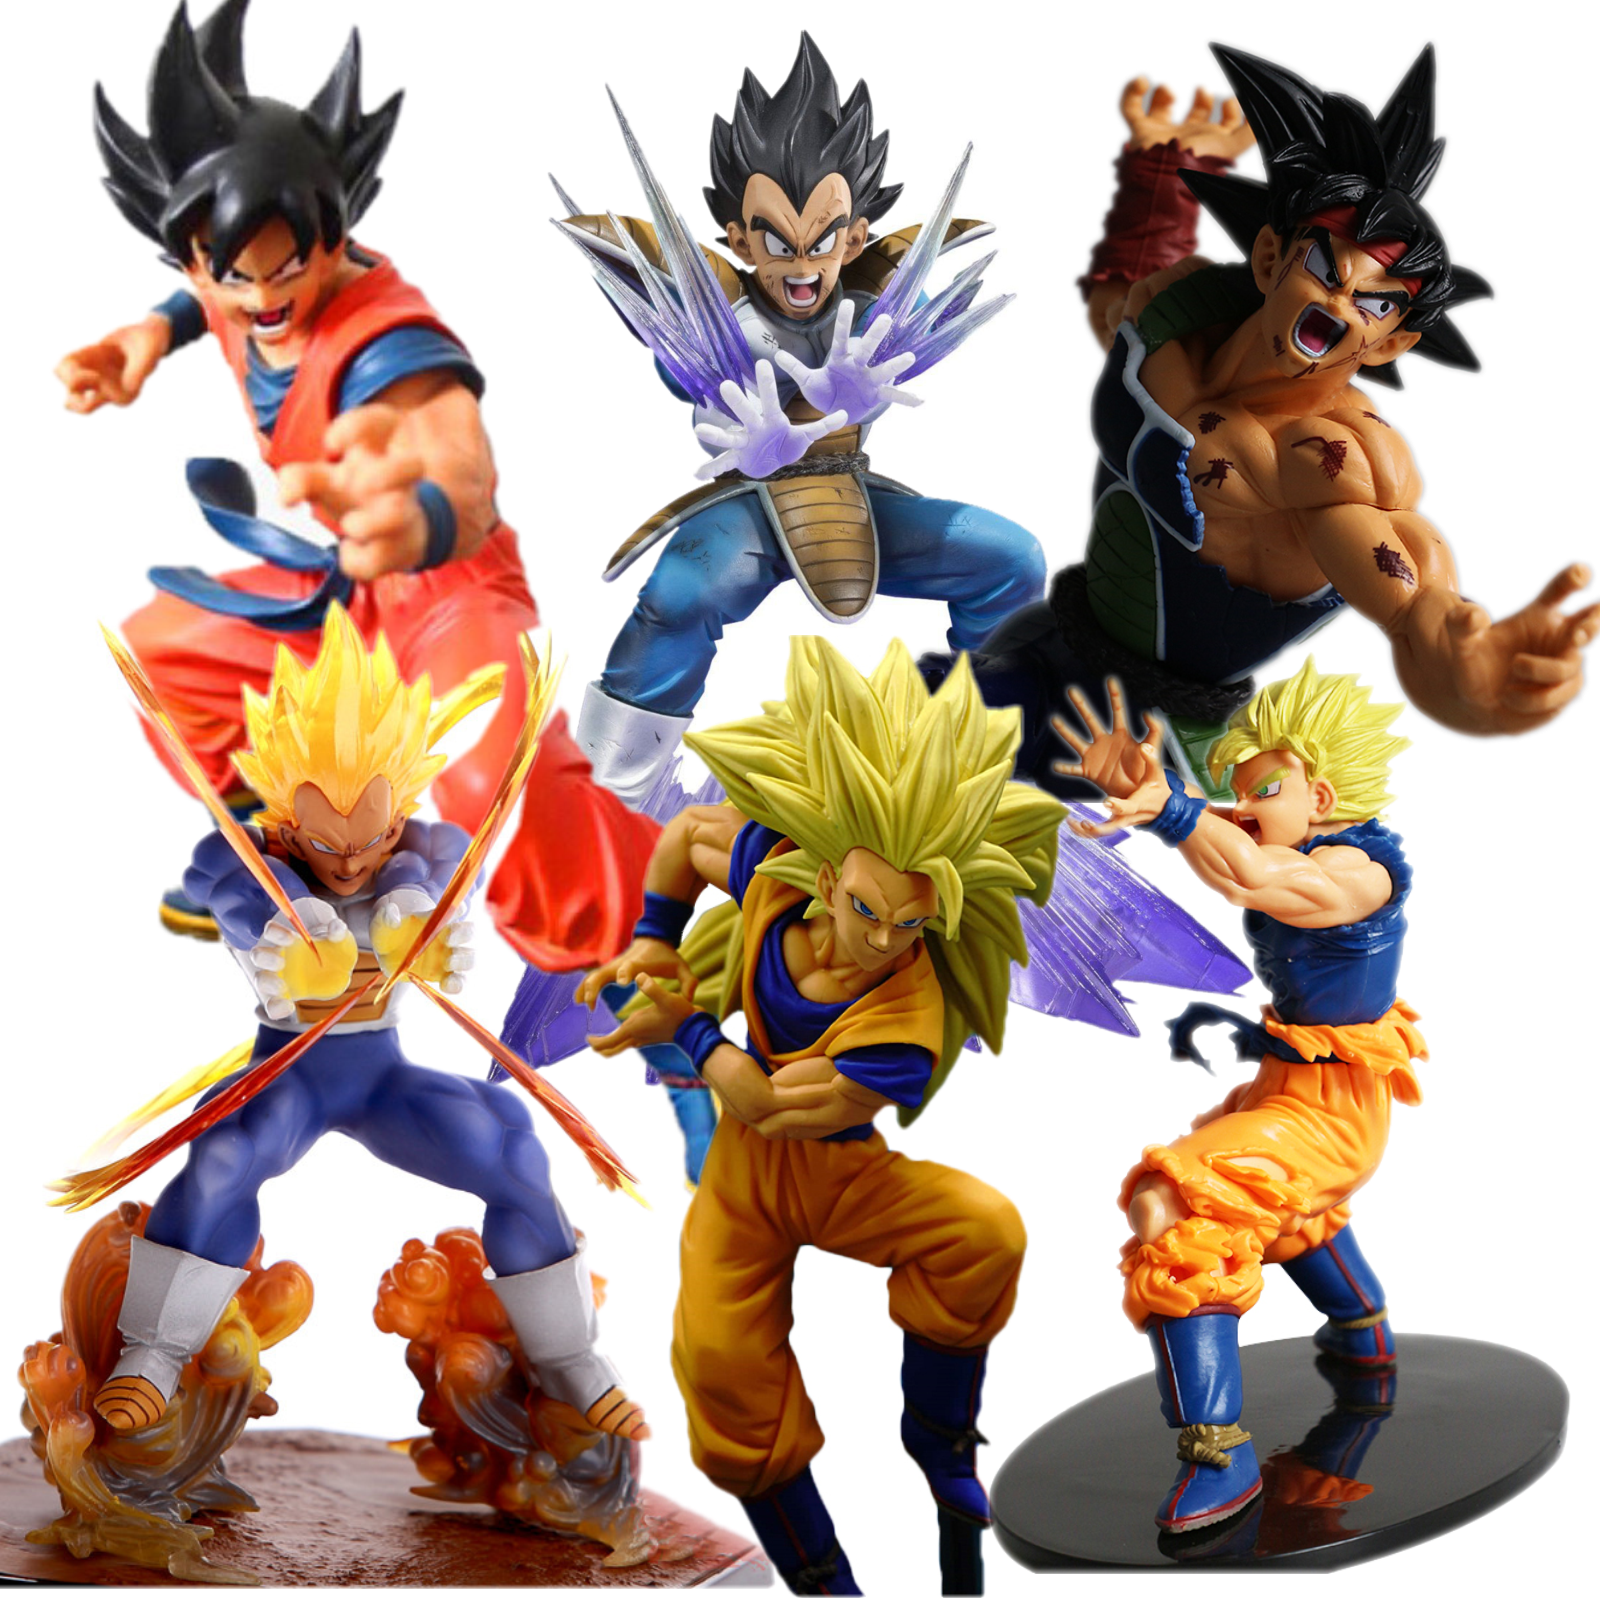 Dragon Ball Z Super Saiyan Son Goku Vegeta Trunks Action Figure Collection Toys Doll Robot Figure Kit Block New in Box